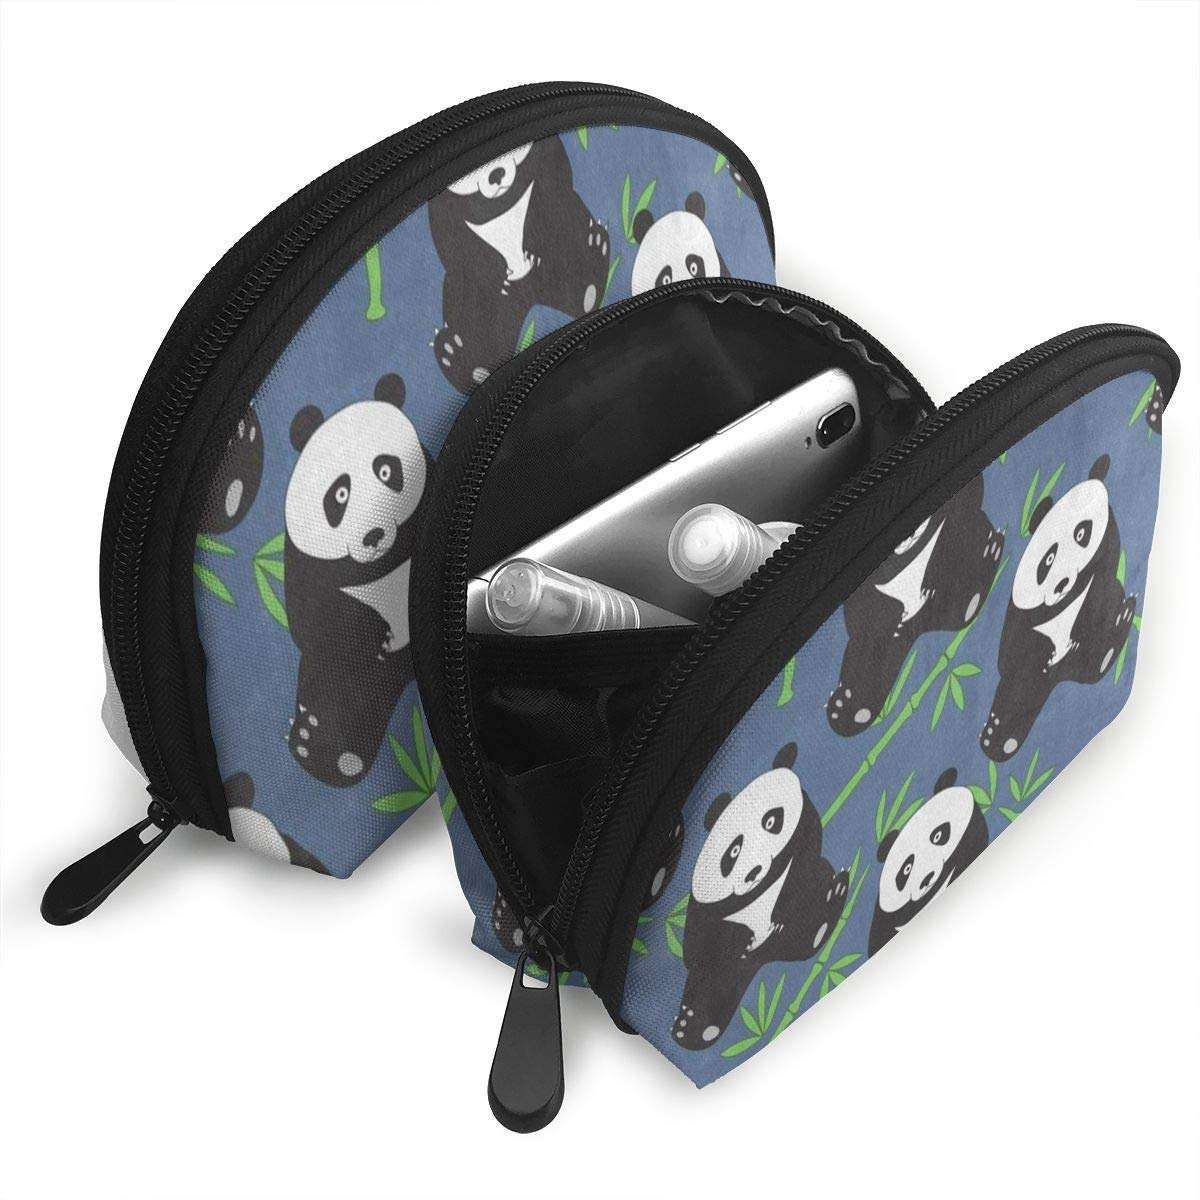 03a170fb3576 Travel Bags Abstract Panda Animal Bamboo Toiletry Beauty Bag For Women/Girls